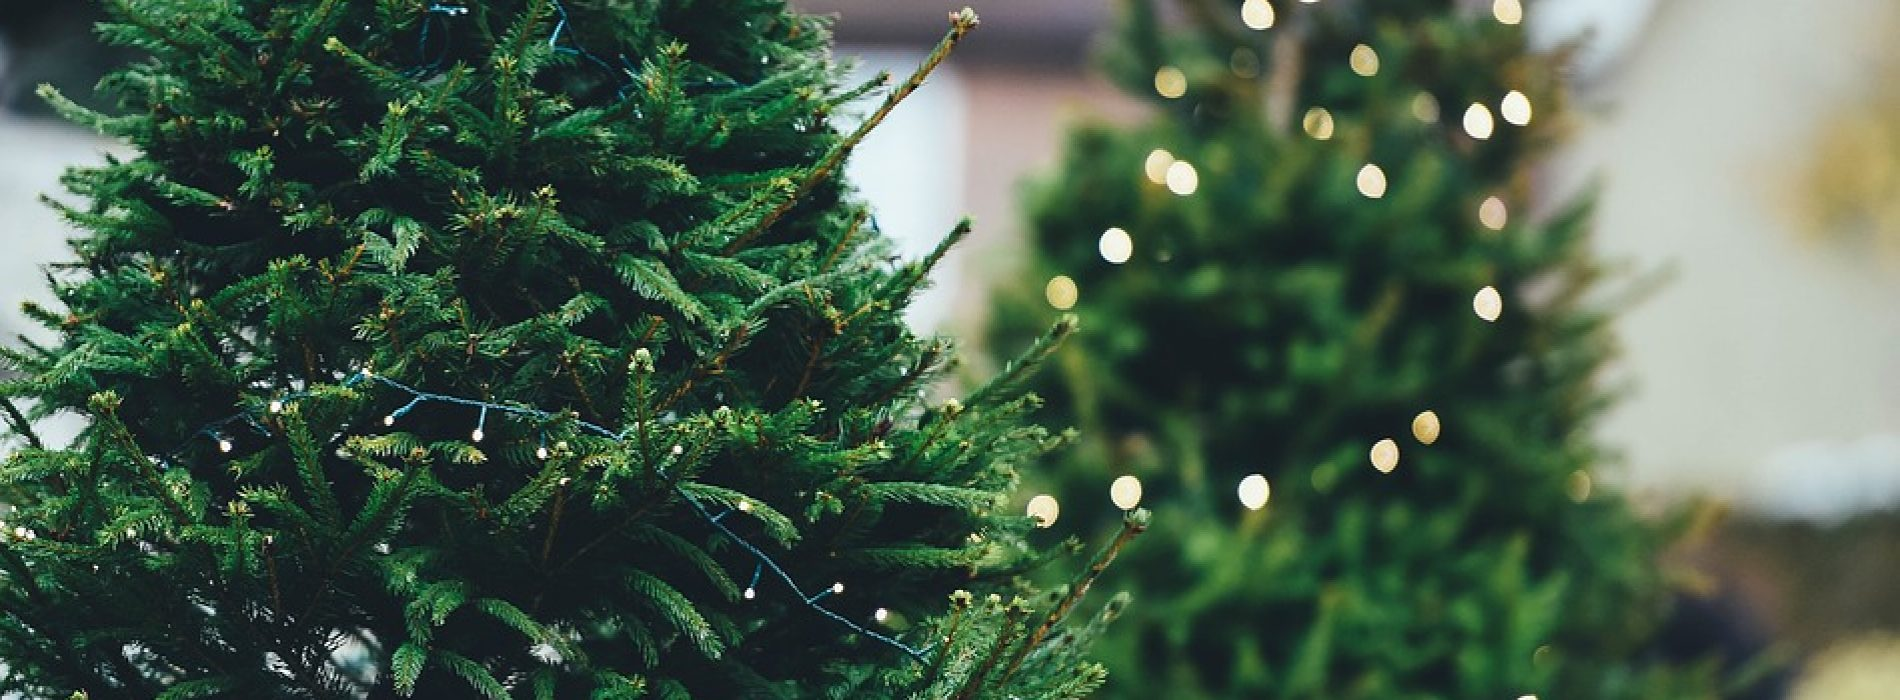 Americans are Starting to Prefer European-Style Christmas Trees